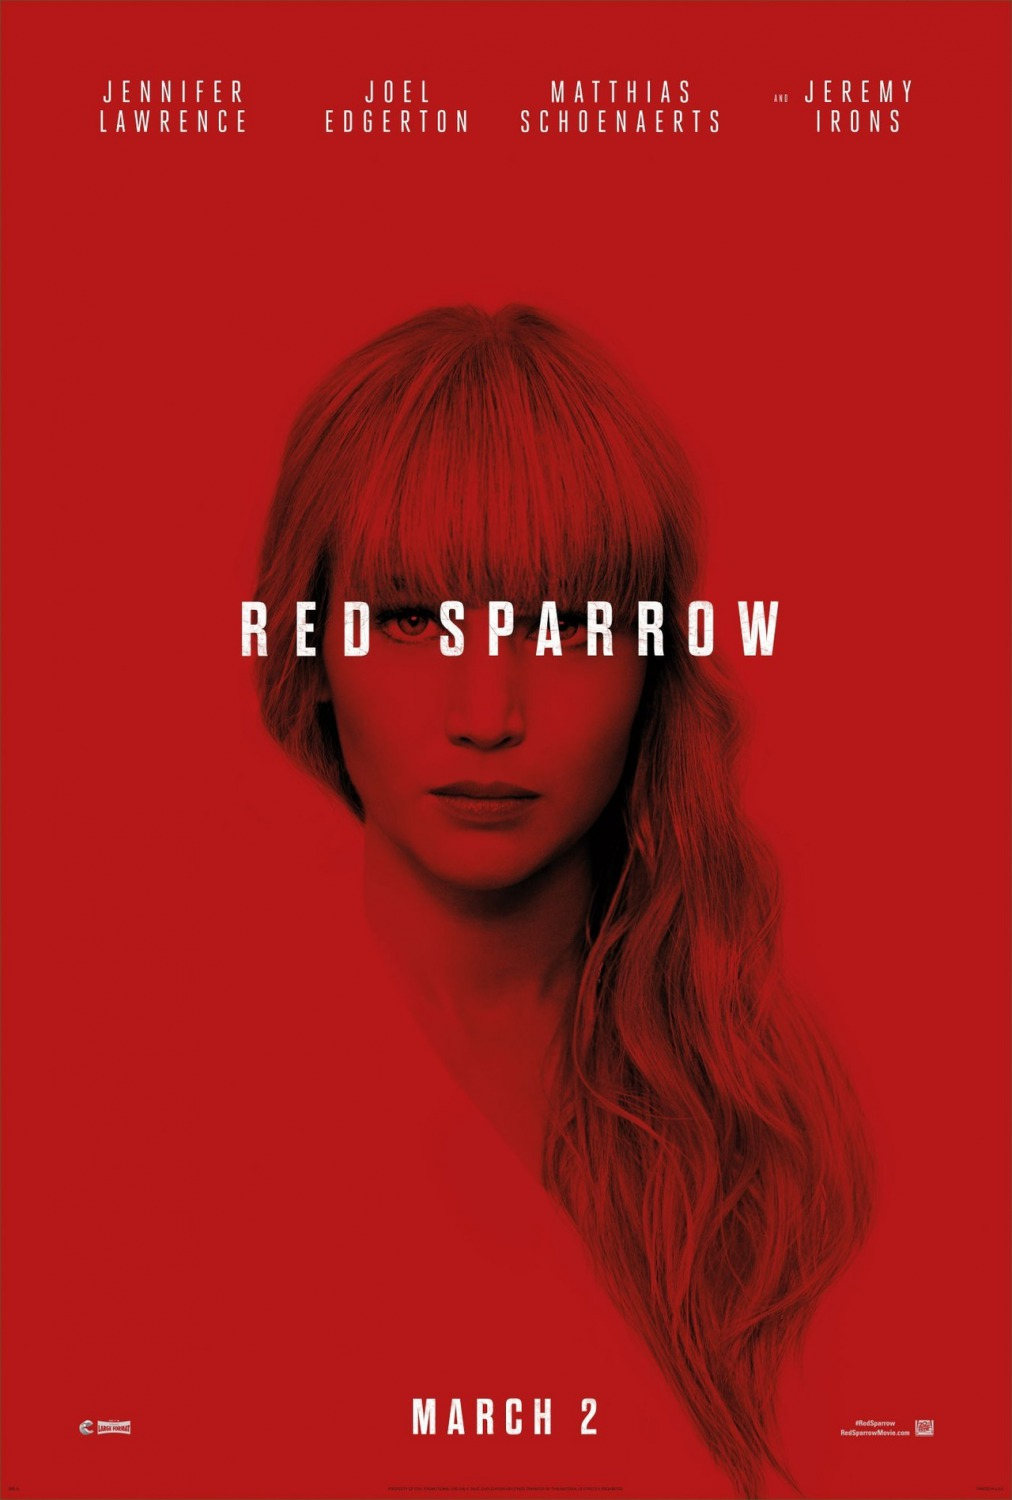 Red Sparrow (Film) | Red Sparrow Wiki